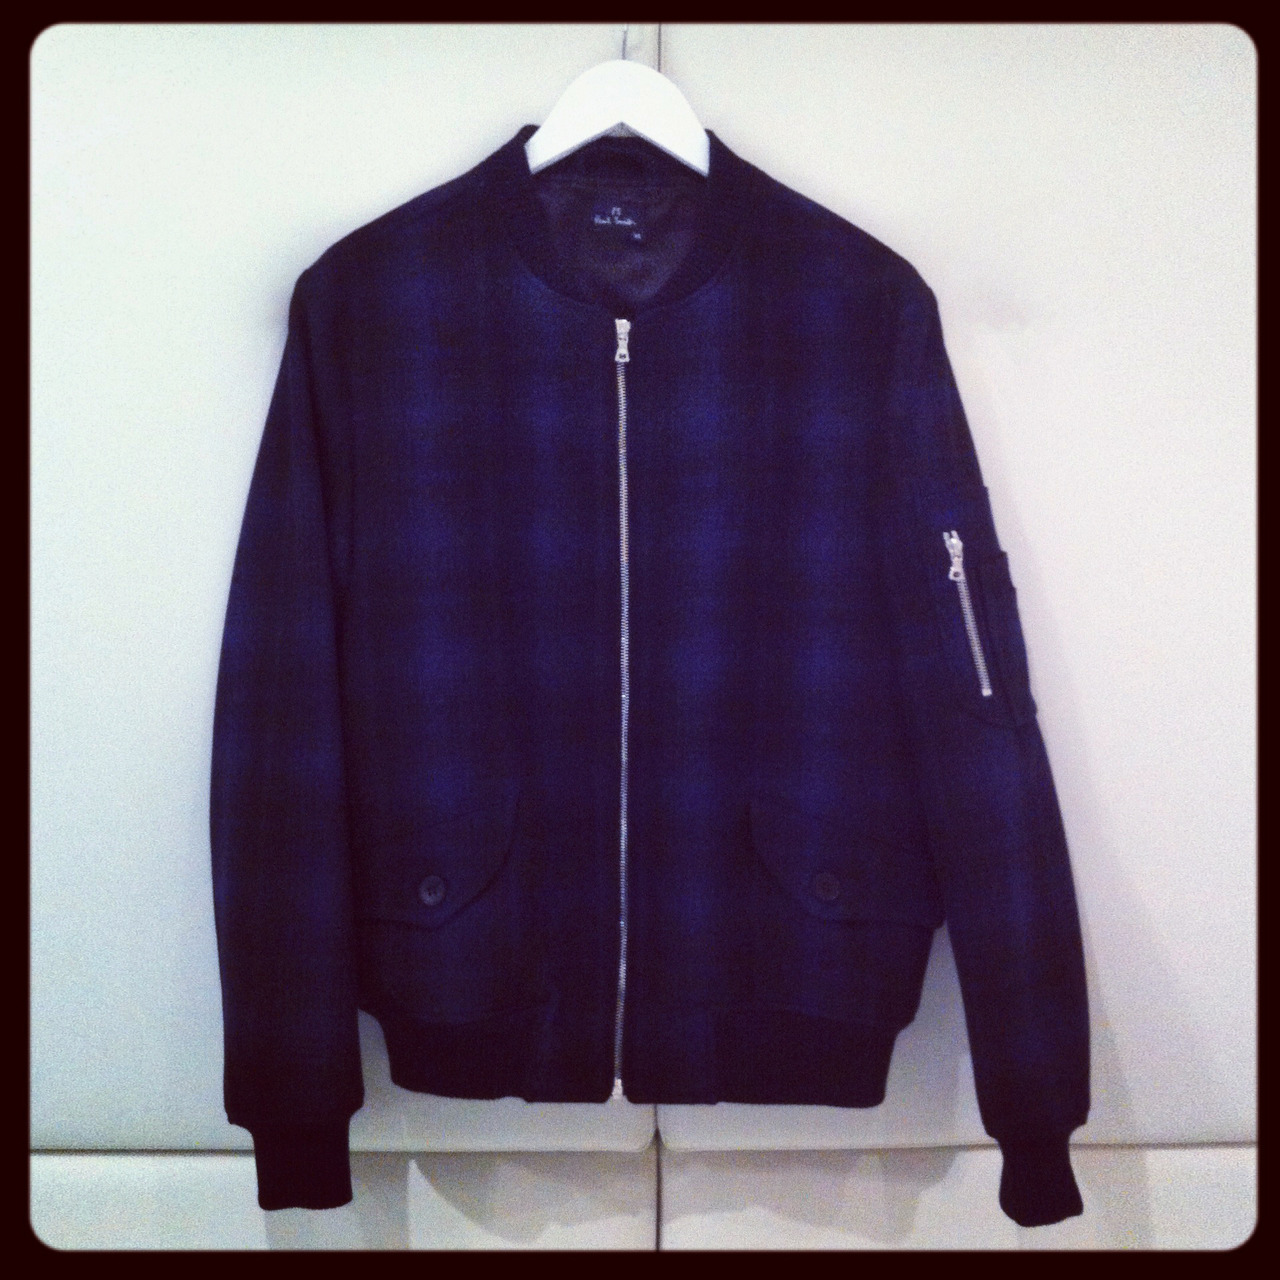 Today we're coveting this plaid bomber jacket from PS by Paul Smith. BUY at: http://bit.ly/Scp68T or SHOP all bomber jackets at: http://bit.ly/W6dcnZ